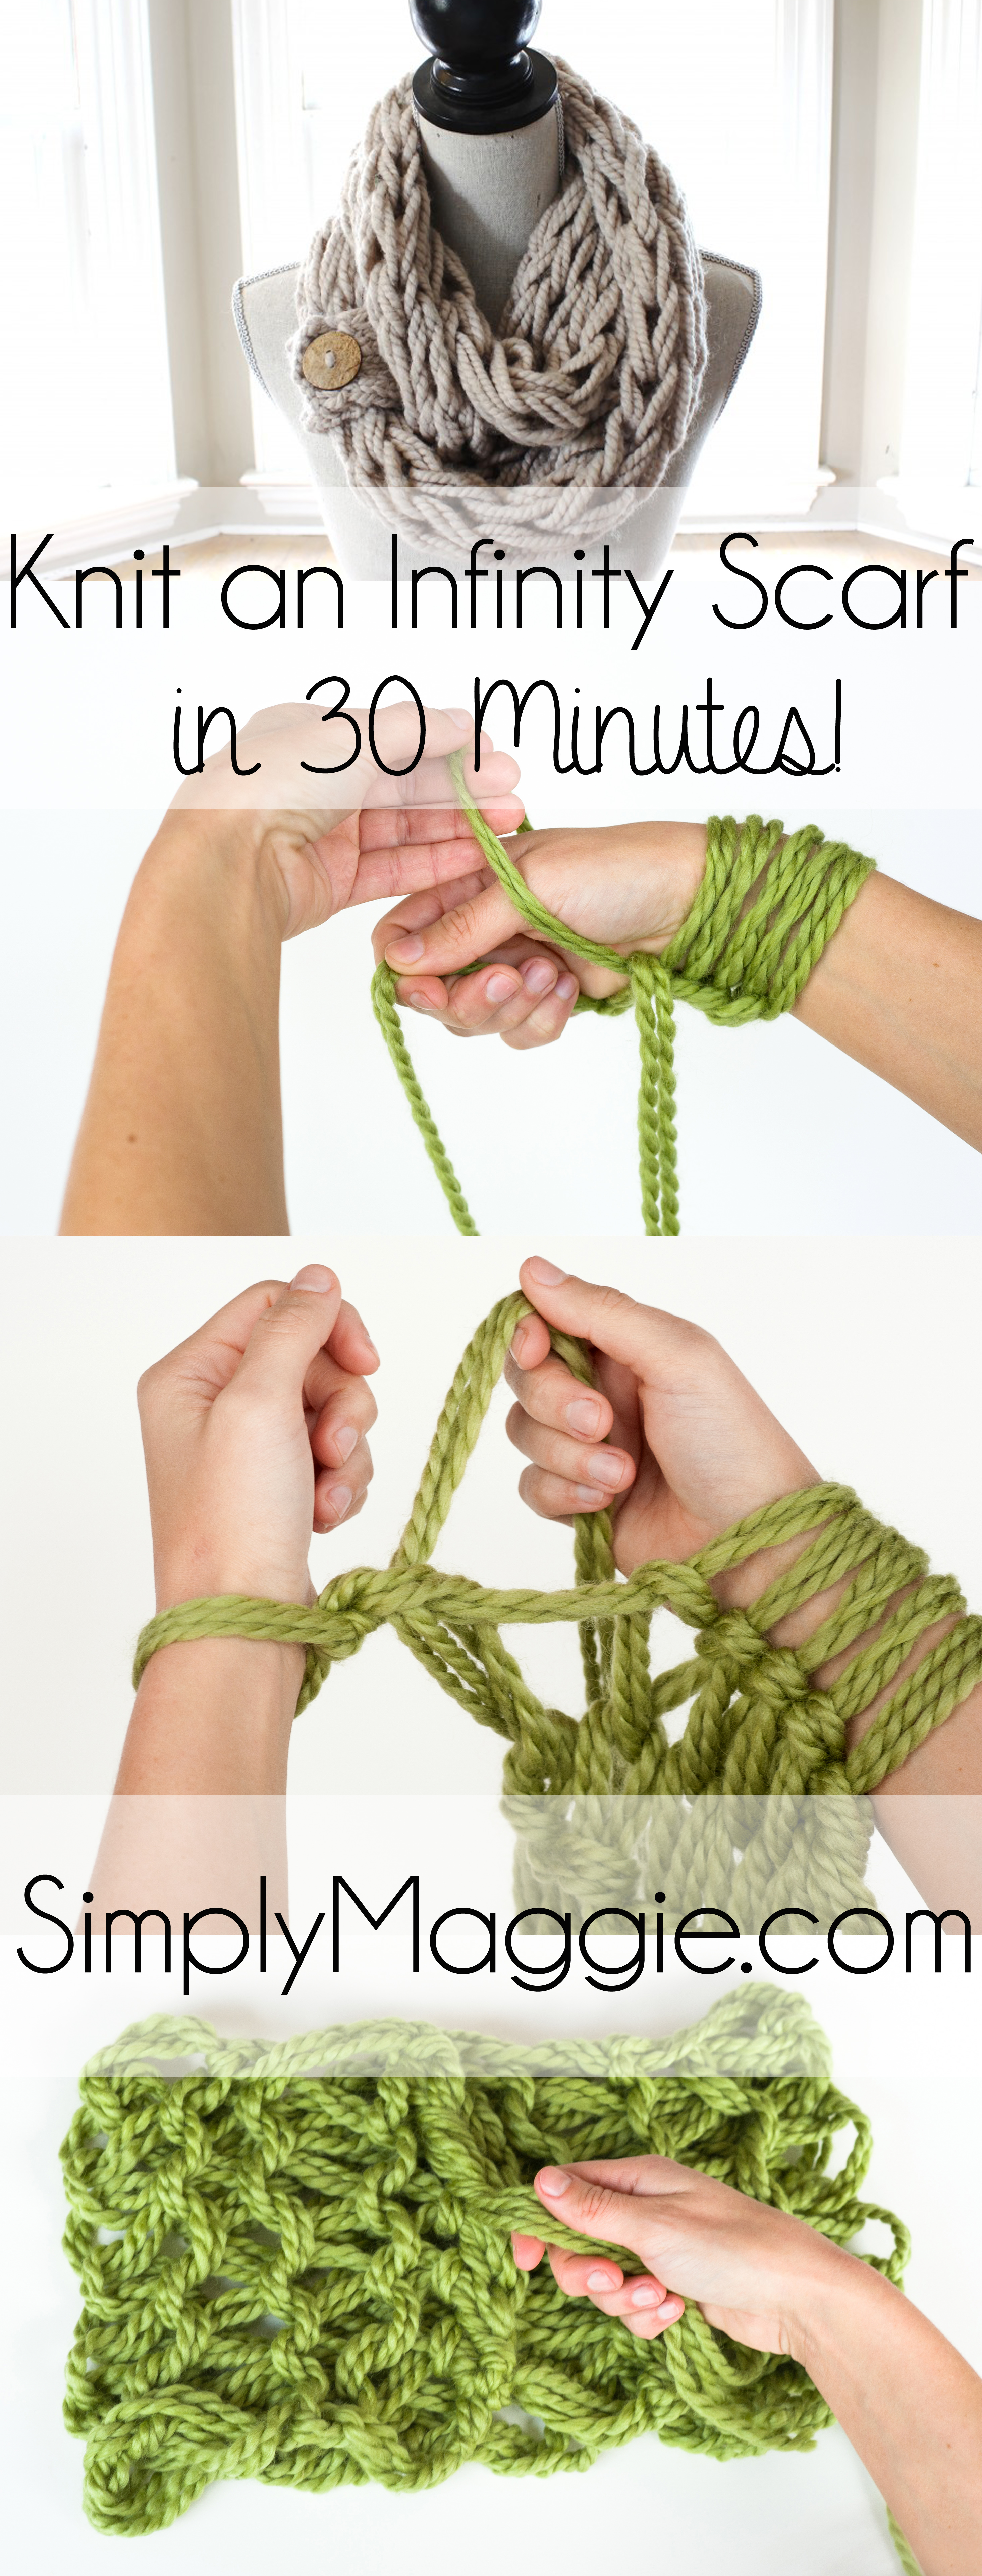 Arm Knitting Step By Step Tutorial : The basics of arm knitting simplymaggie